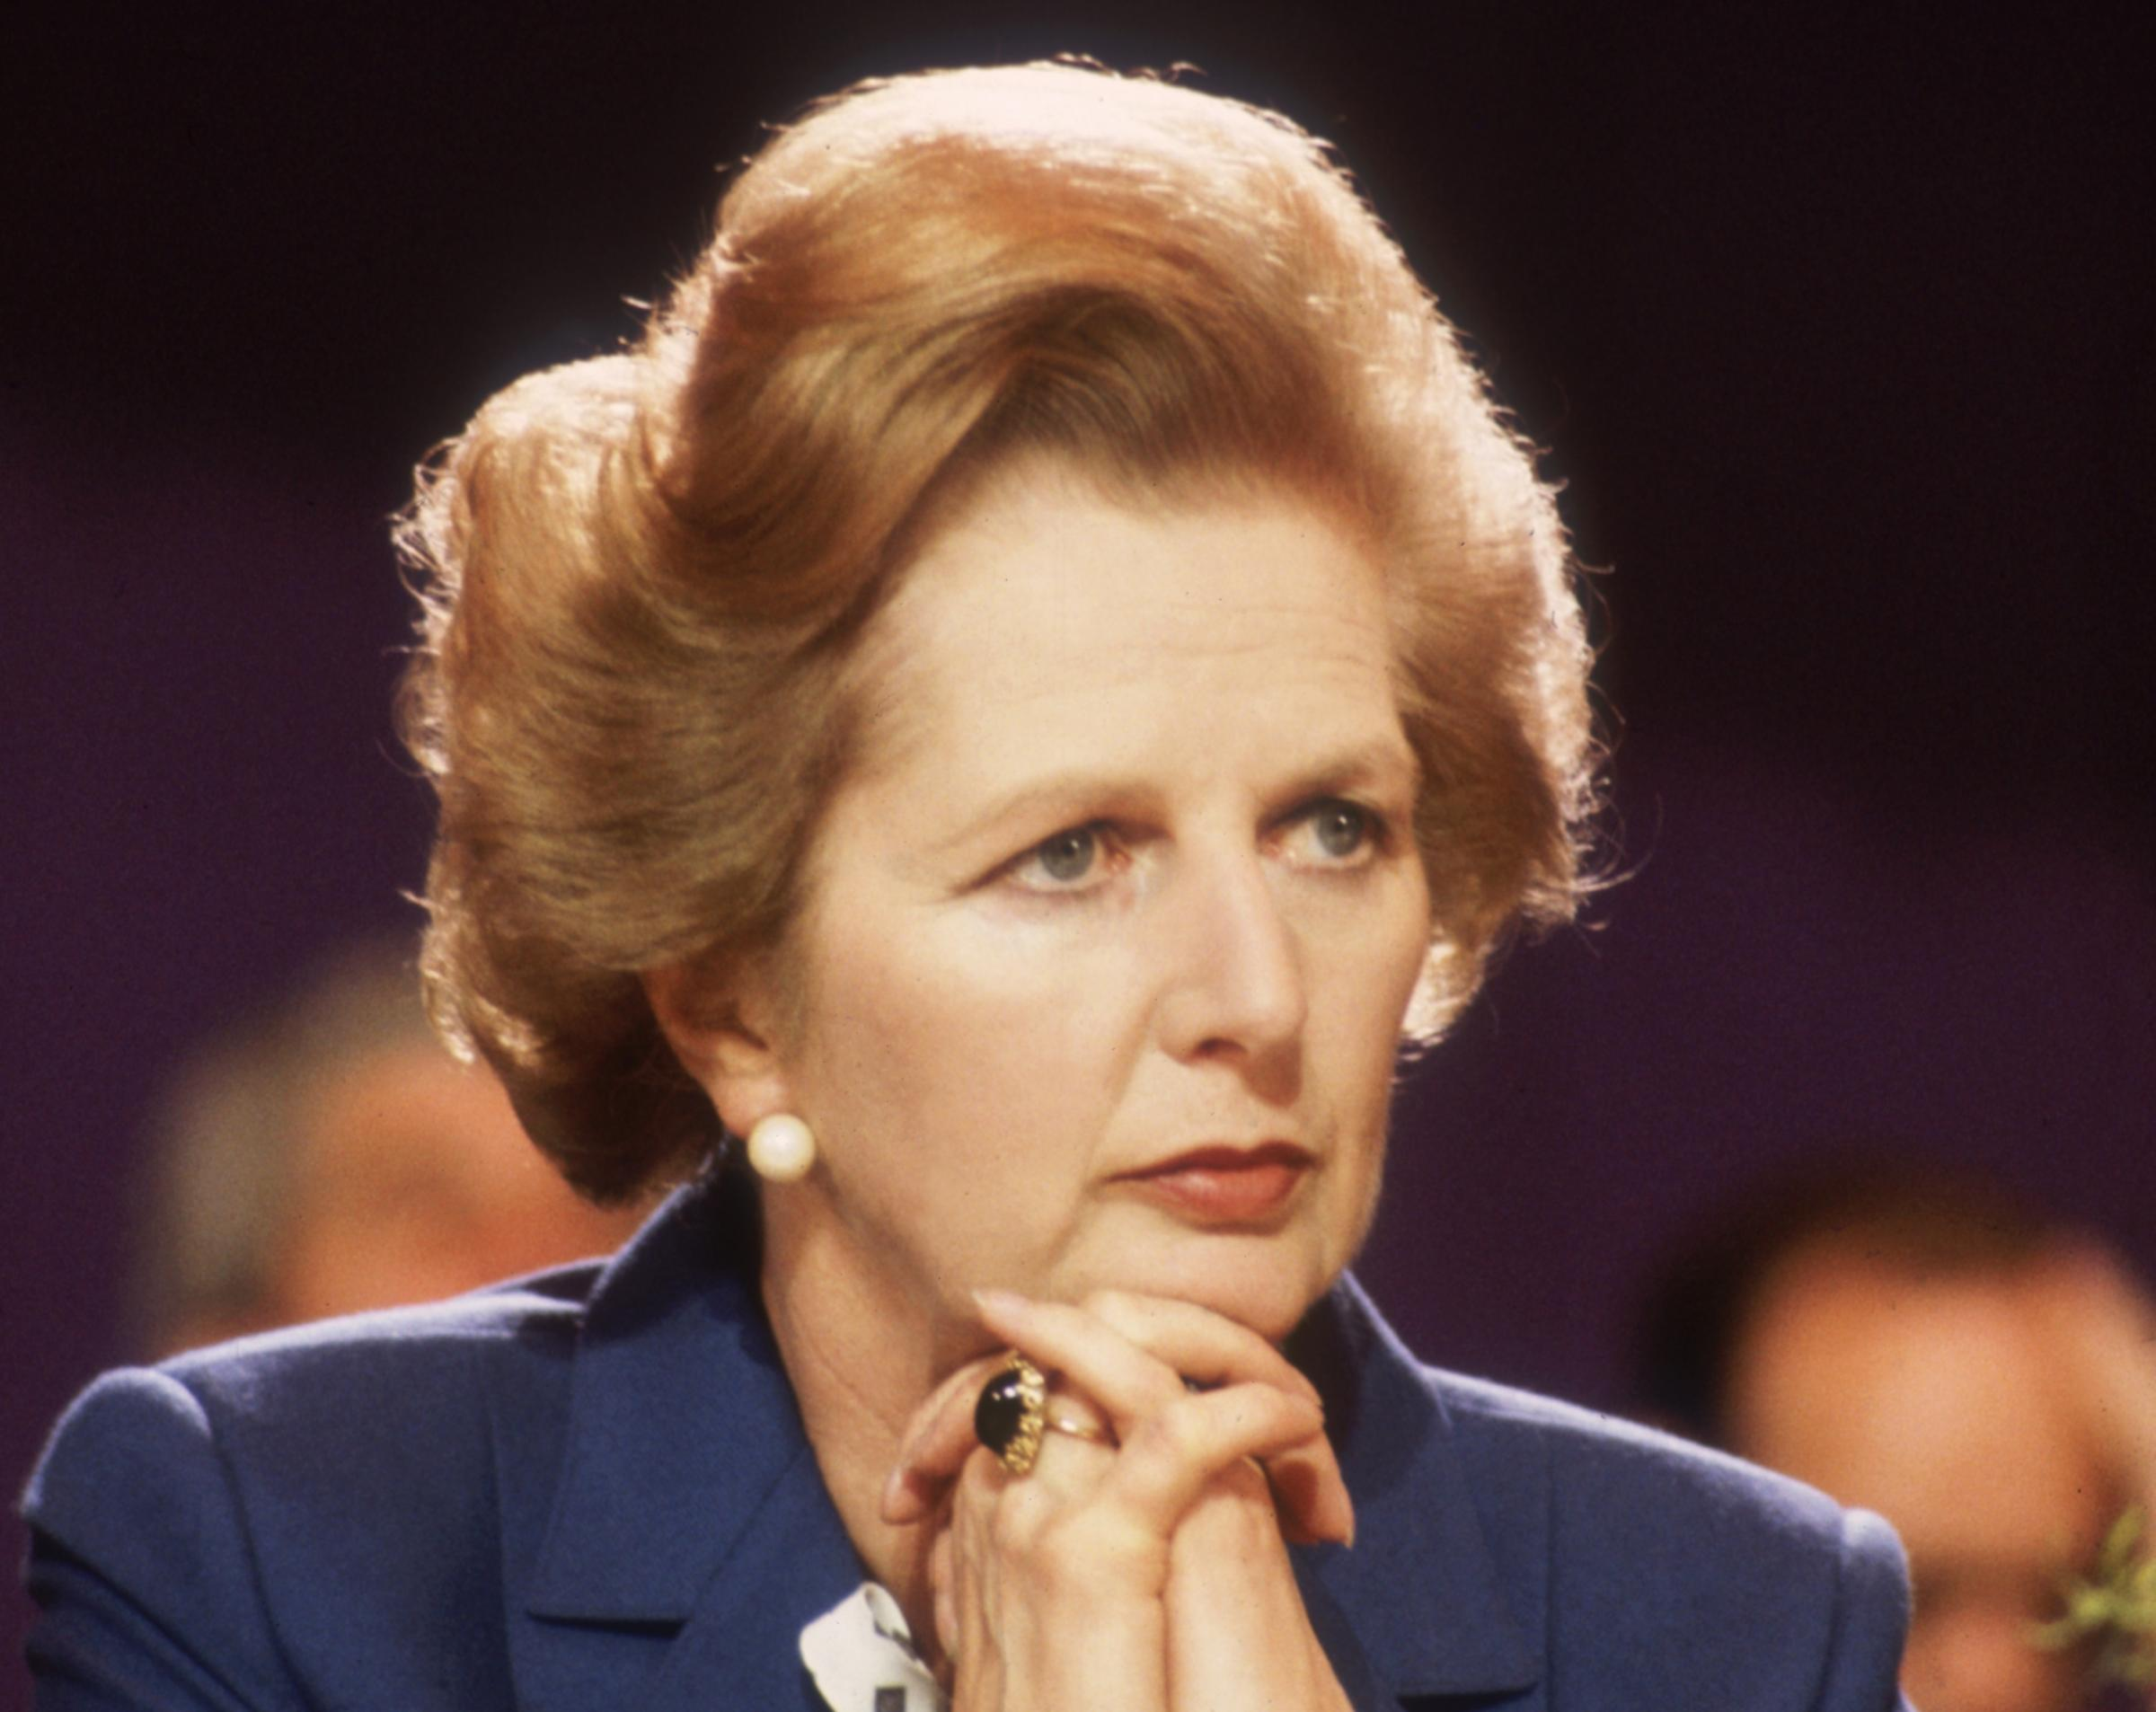 the biography of margaret thatcher Margaret thatcher: the authorized biography, volume two: everything she  wants (authorised biog vol 2) | charles moore | isbn: 9780713992885.